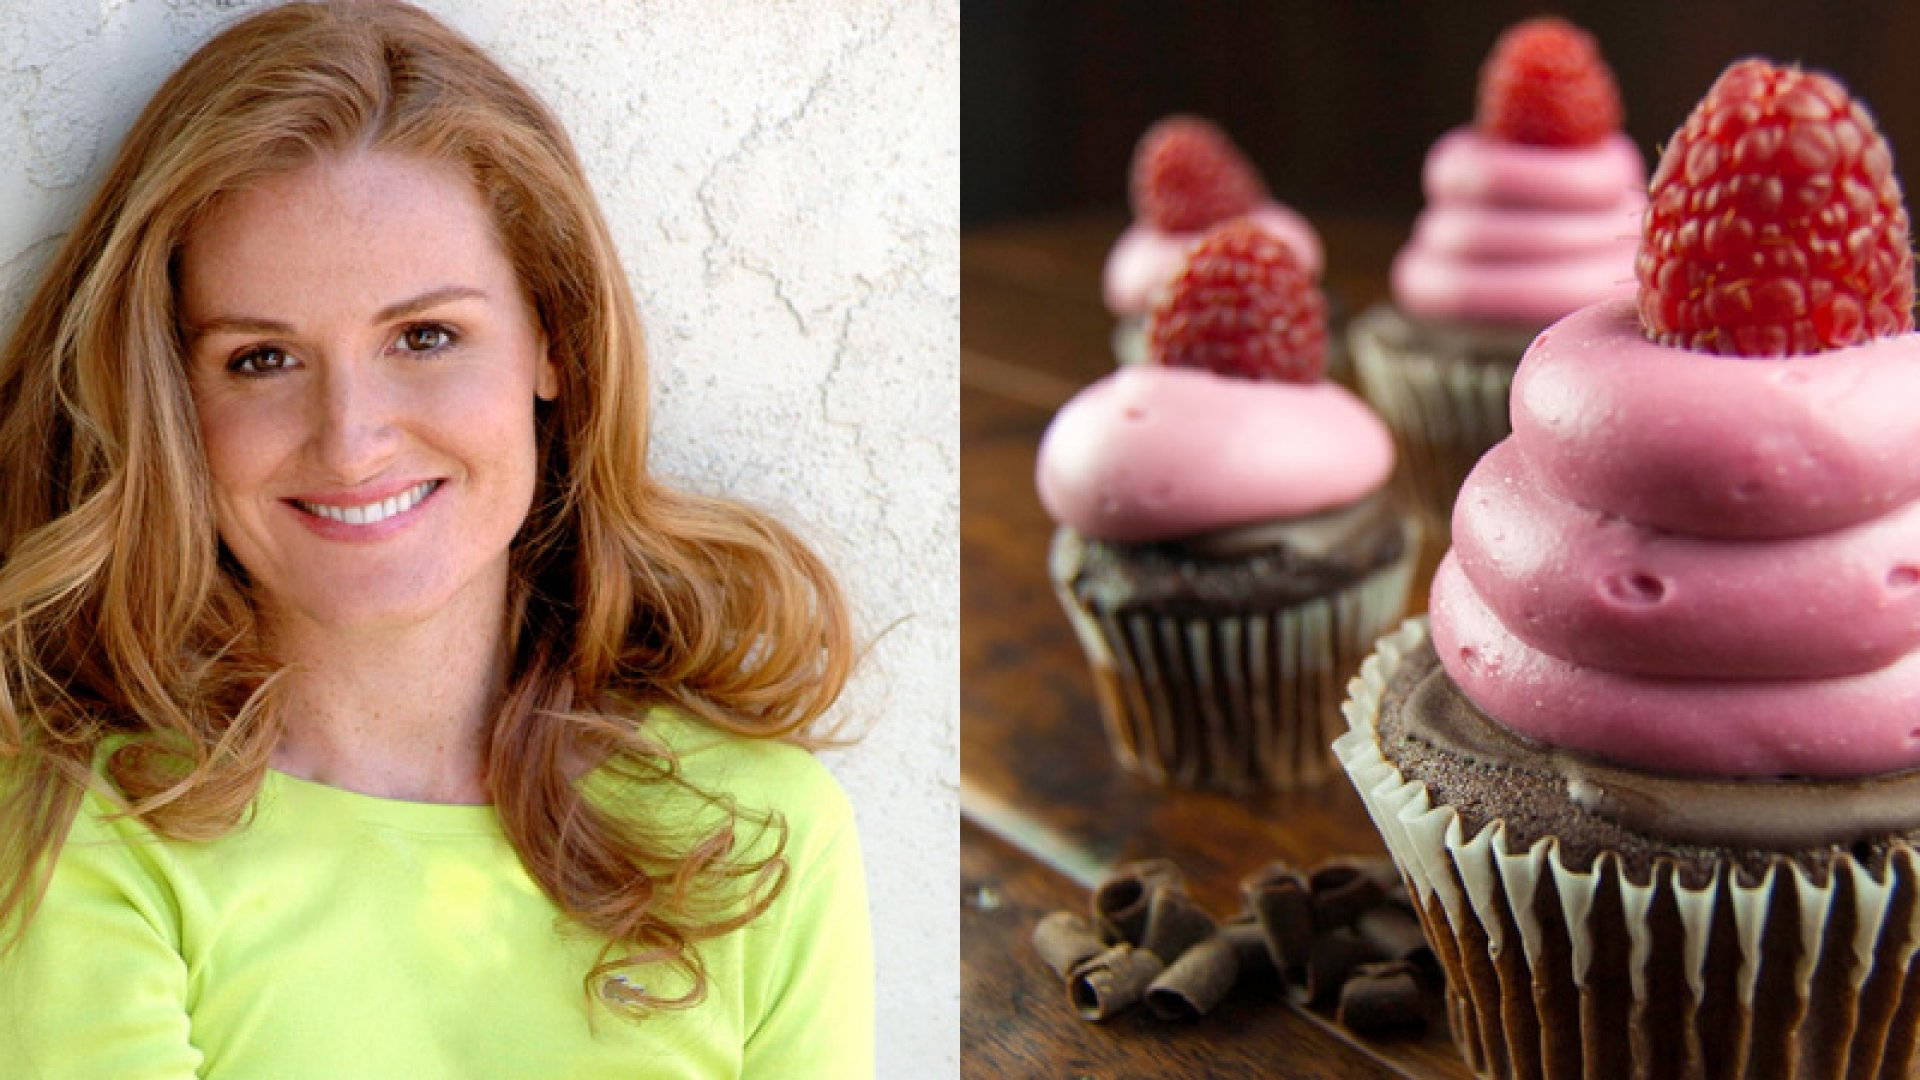 Cupcake Wars: Two Divorces, Two Mortgages, and a Bunch of Damn Good Cupcakes